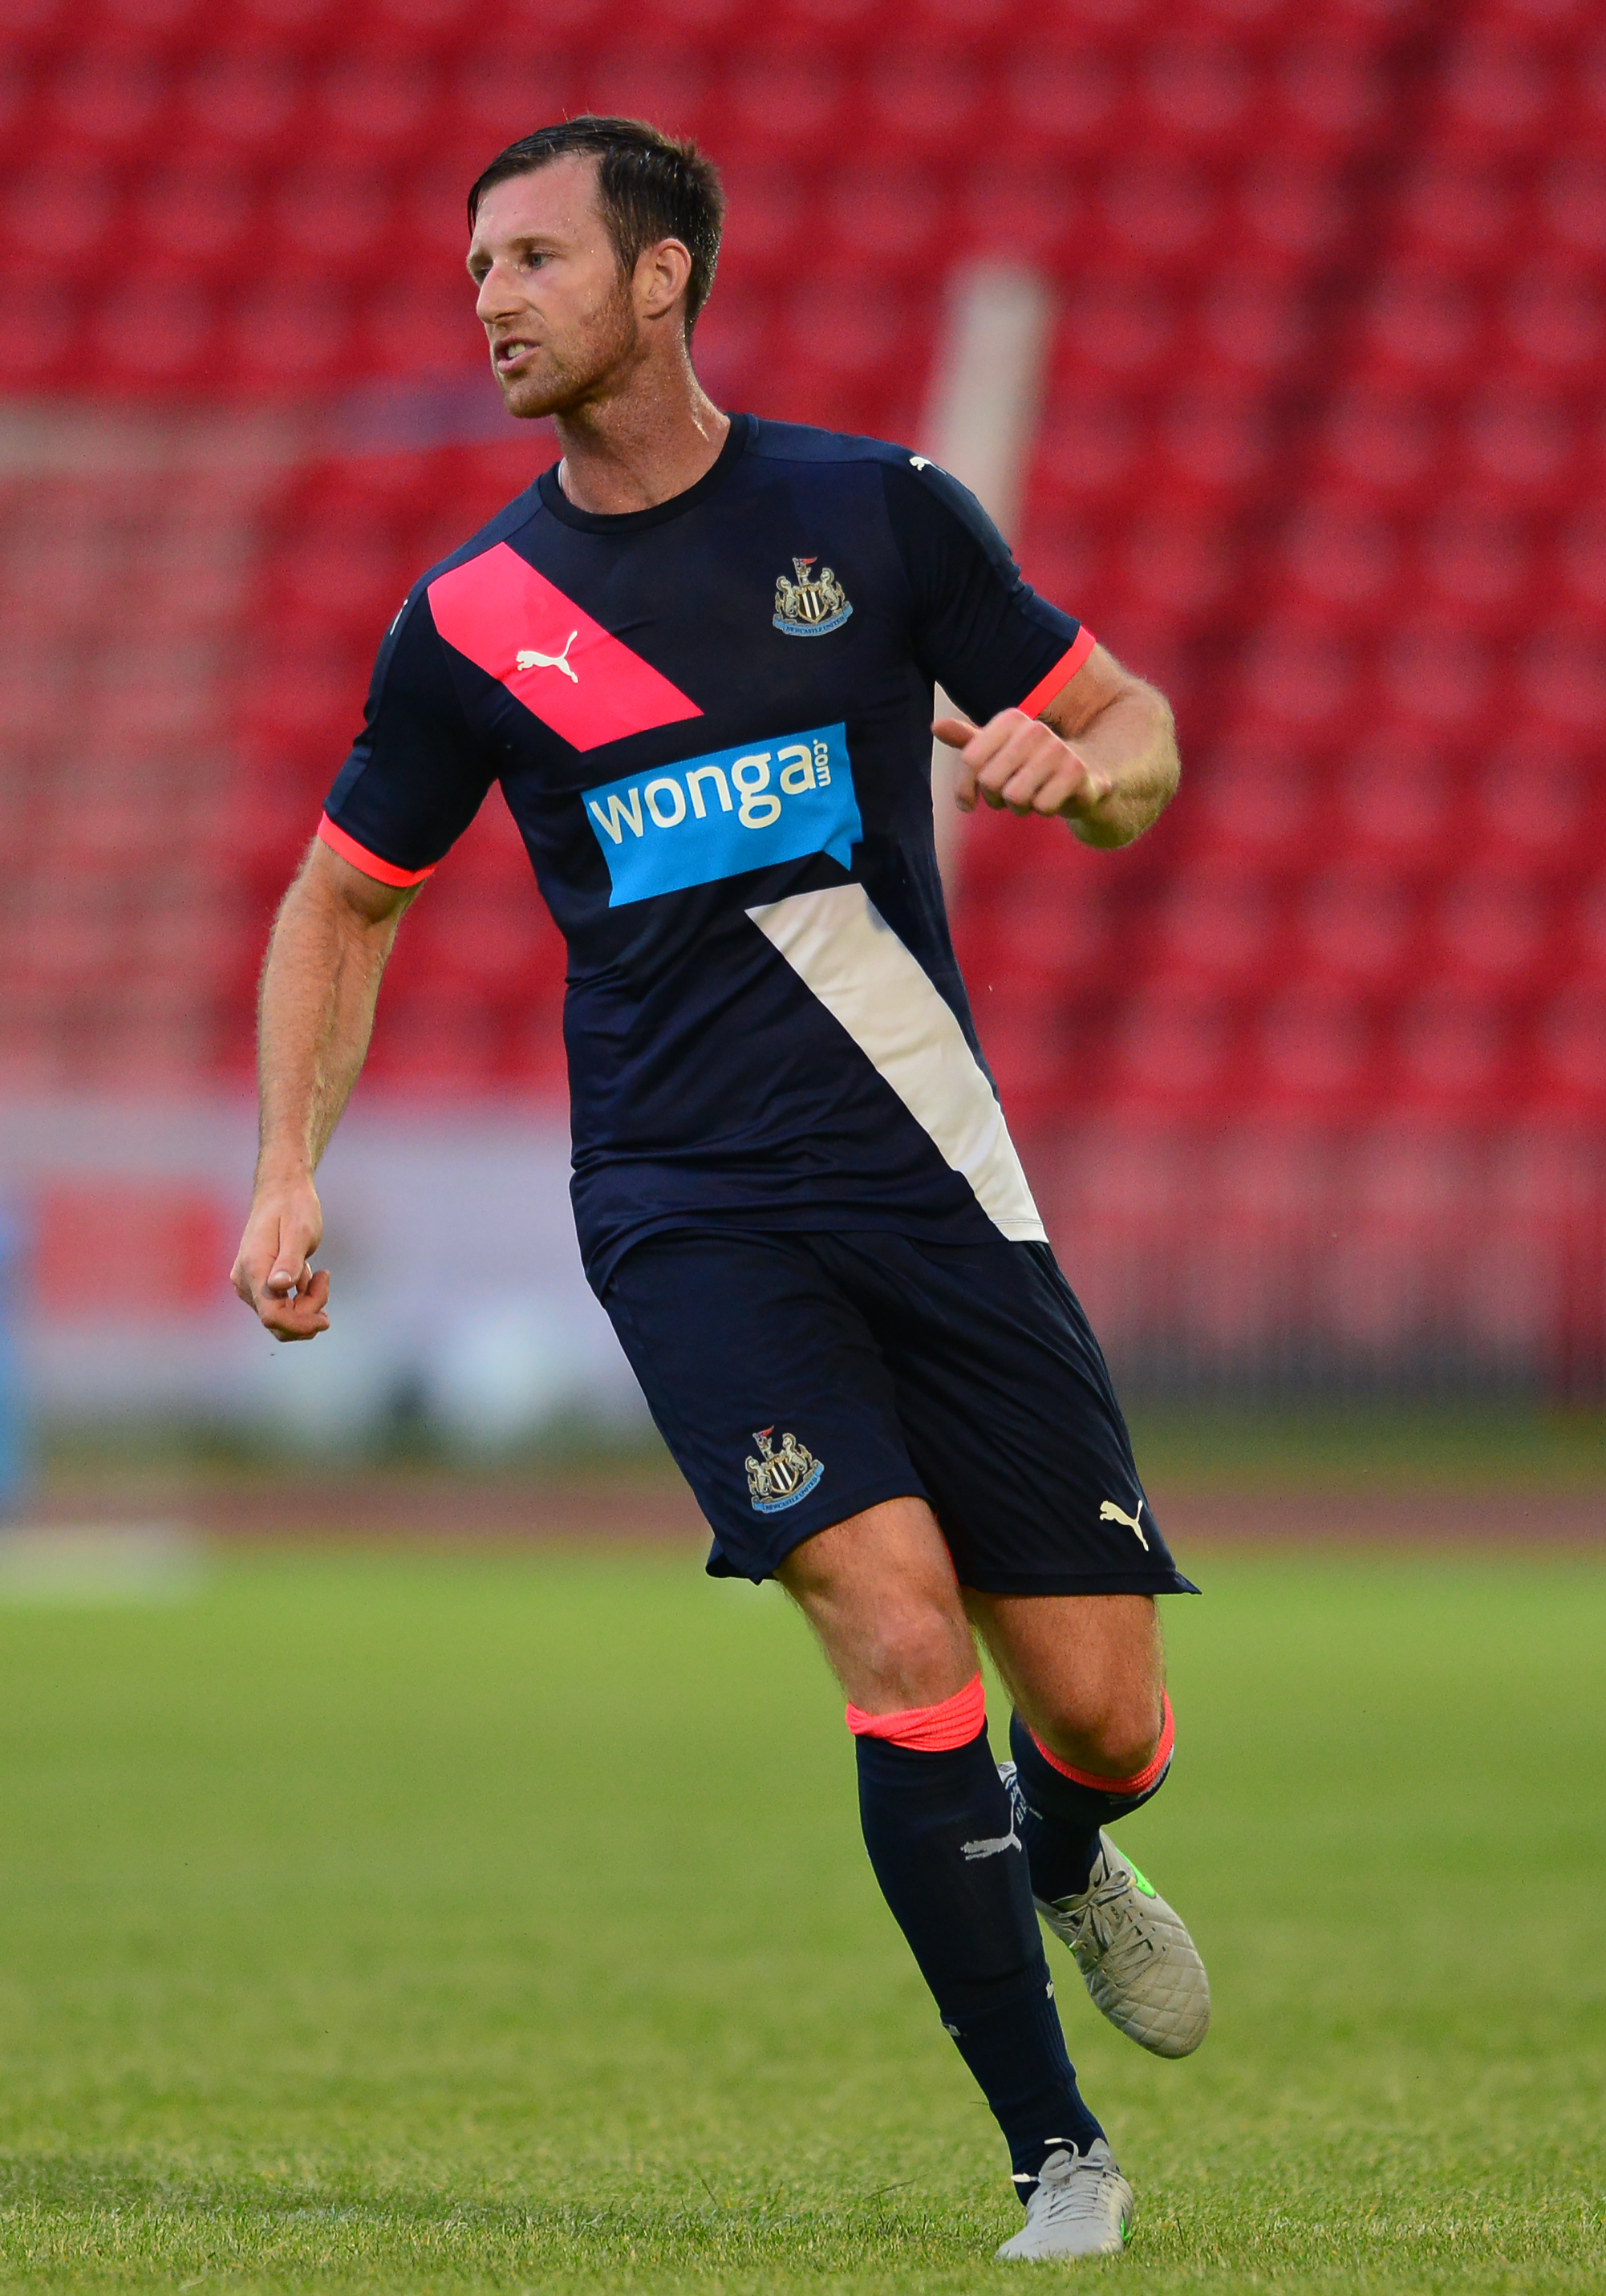 This fella still looks set to play a major role for NUFC in 2015.